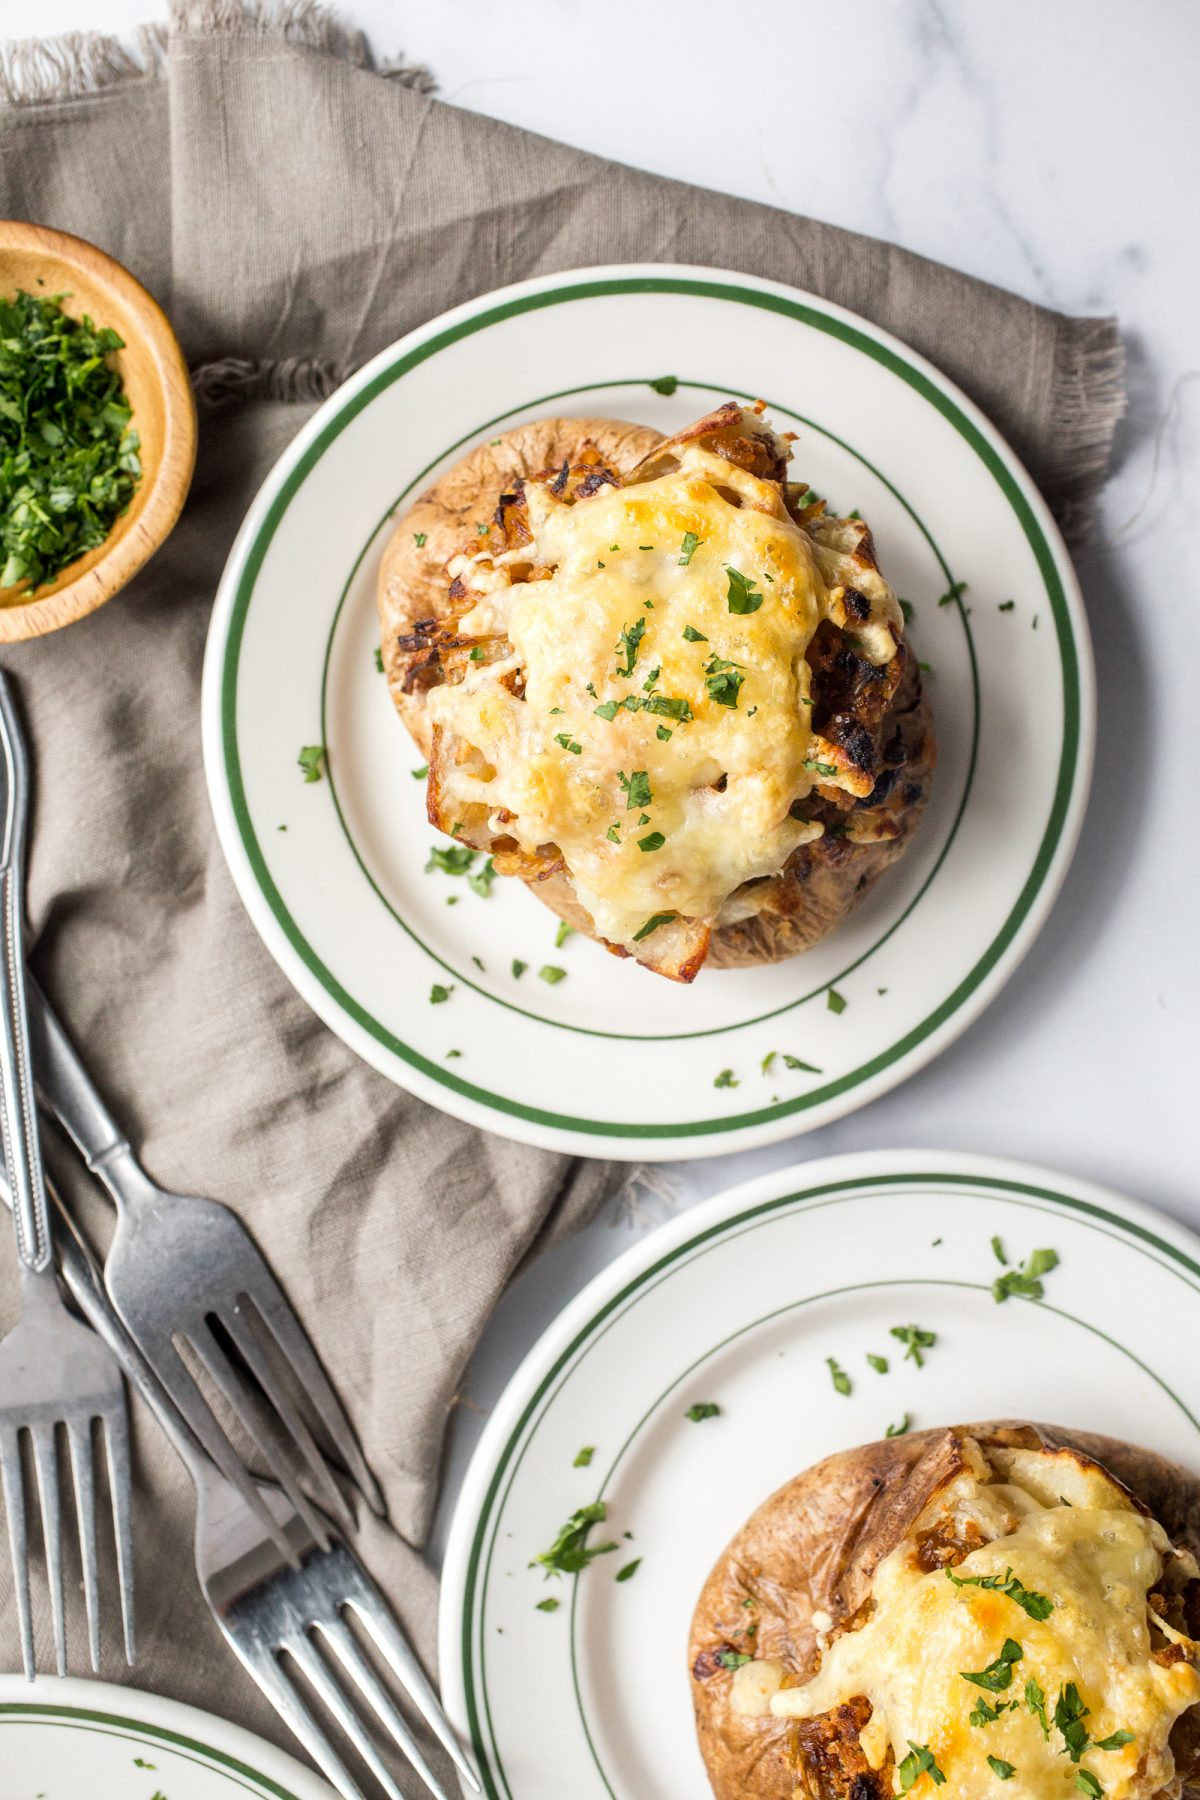 2 loaded baked potatoes stuffed with caramelized onions and gruyere cheese on small white plates